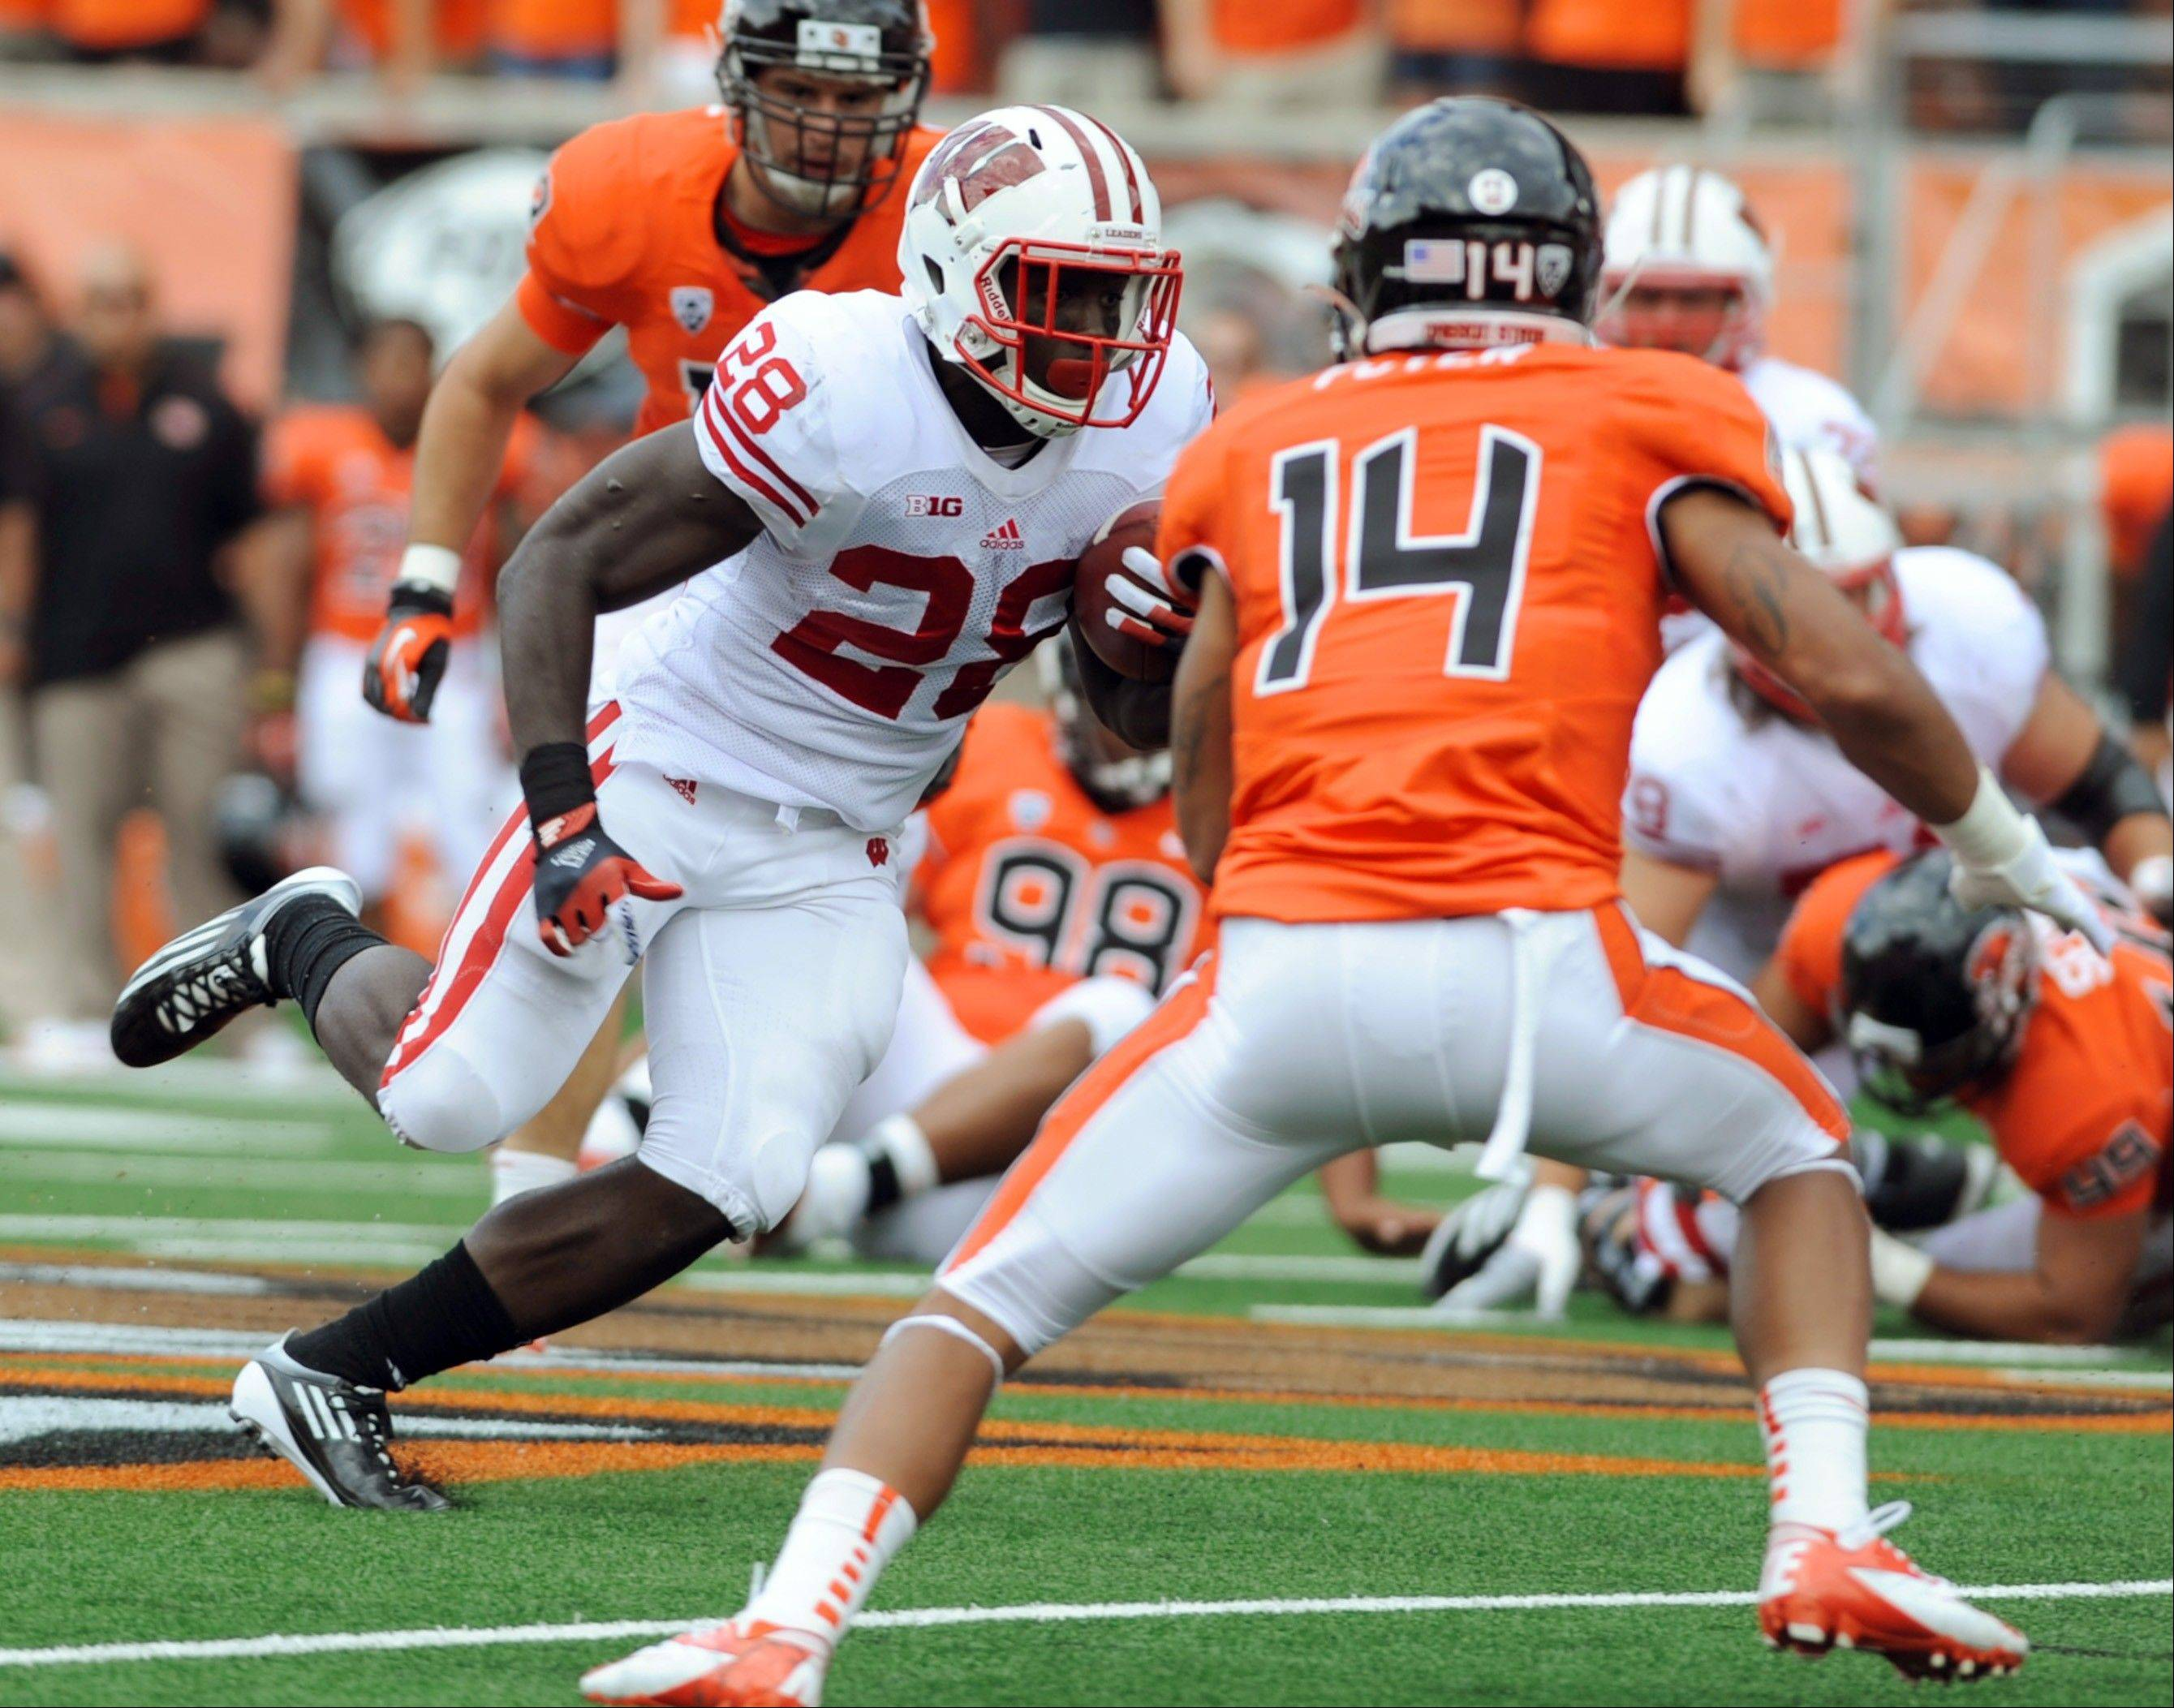 Oregon State's Jordan Poyer (14) rushes against Wisconsin's Montee Ball (28) during the first half of their NCAA college football game in Corvallis, Ore., Saturday.